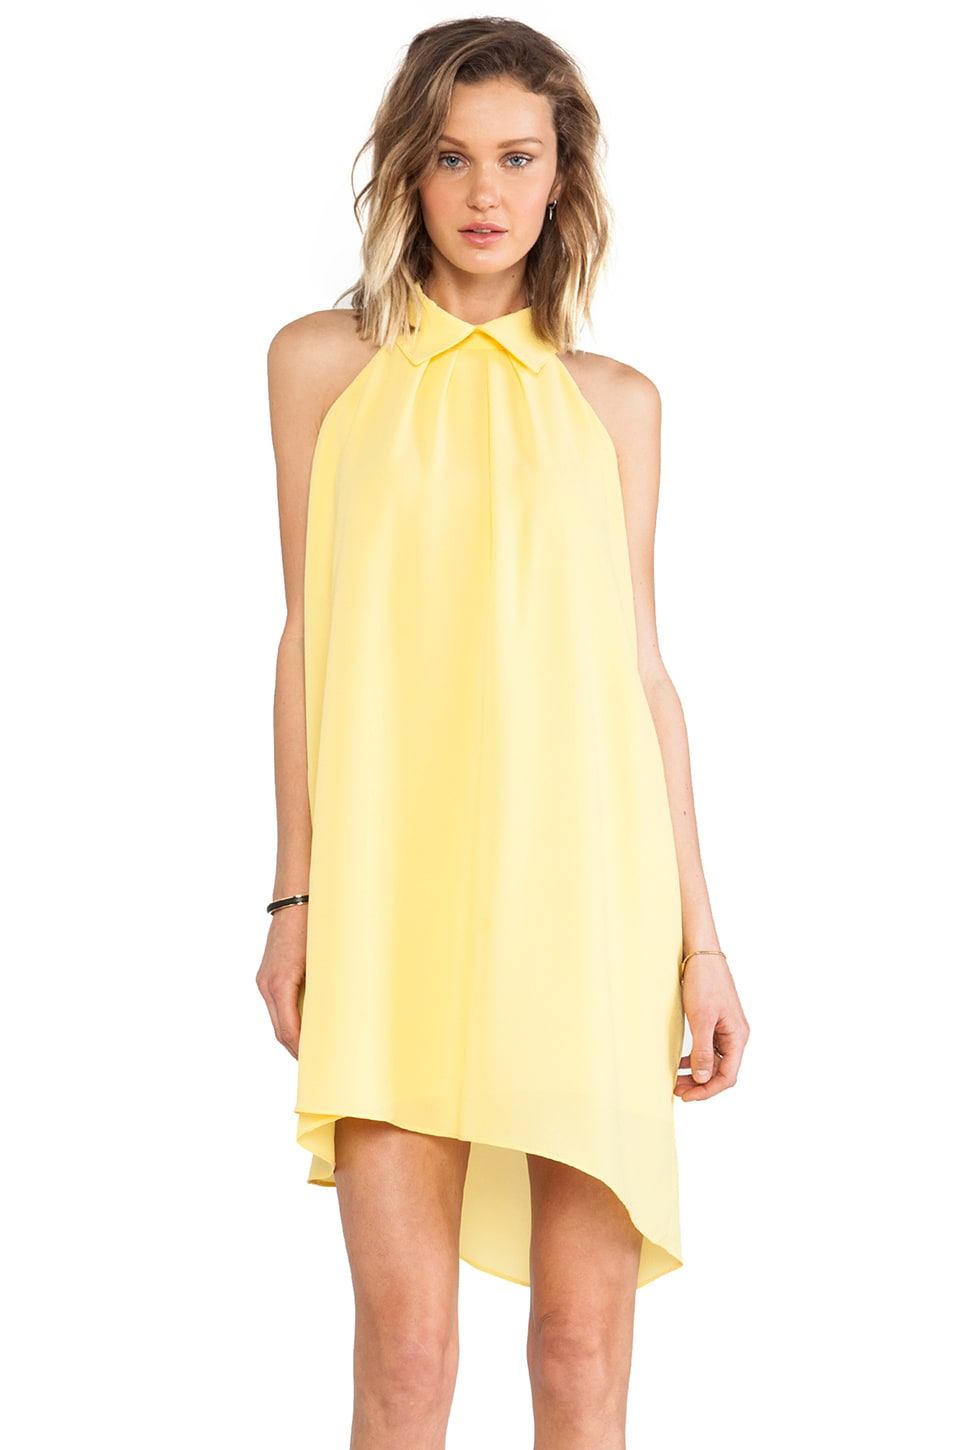 Backstage Monaco Dress in Lemon